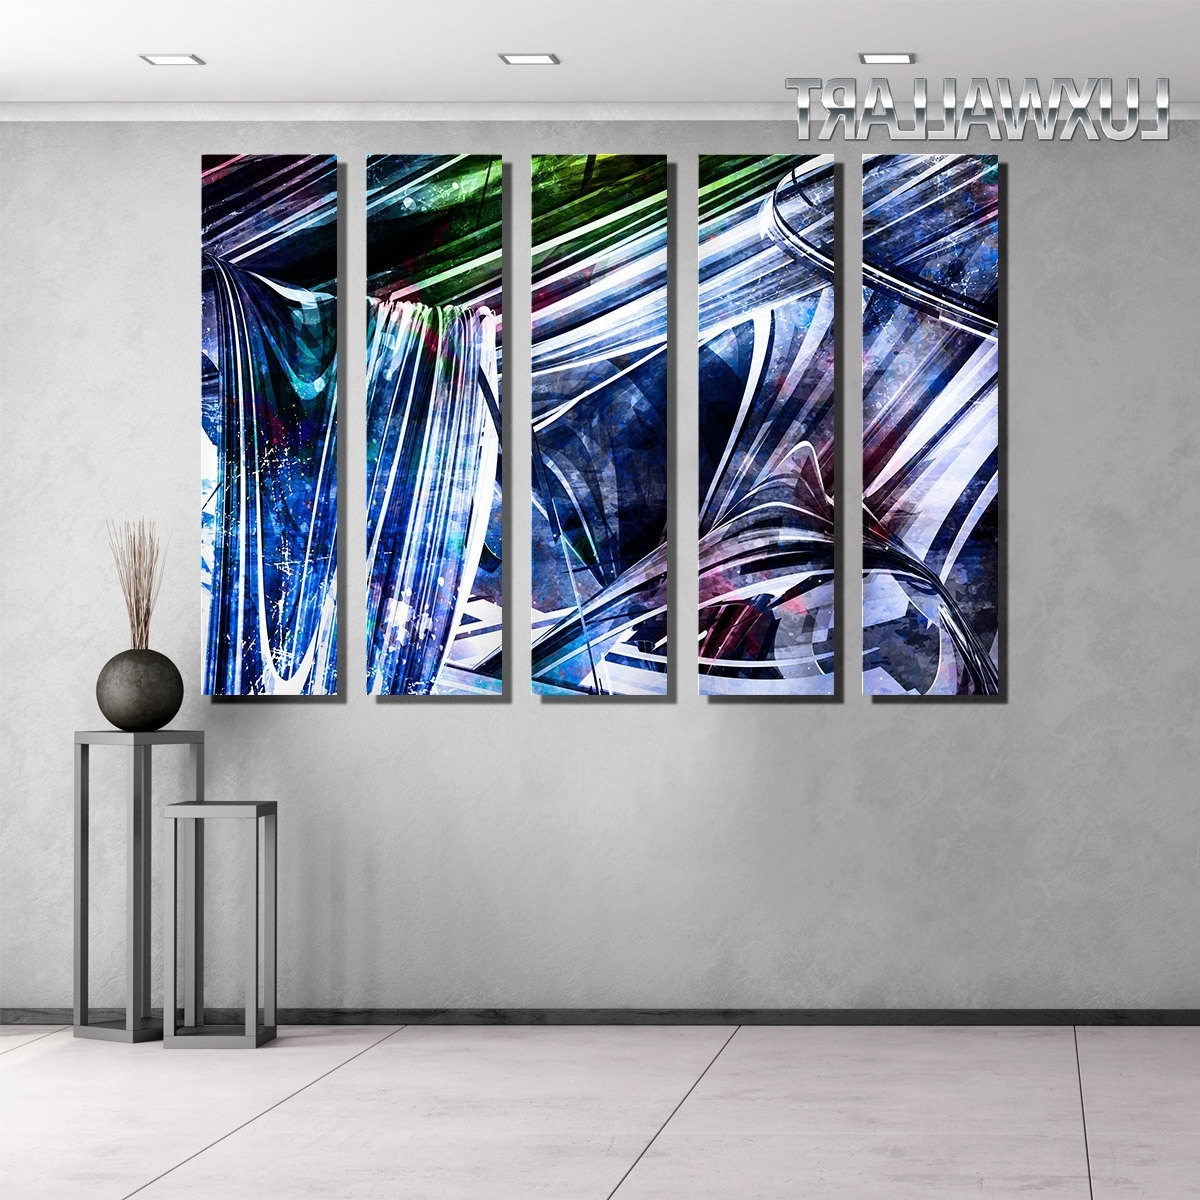 2018 Huge Wall Art With Glossy Huge Wall Art On Aluminum Panels From $ (View 15 of 15)